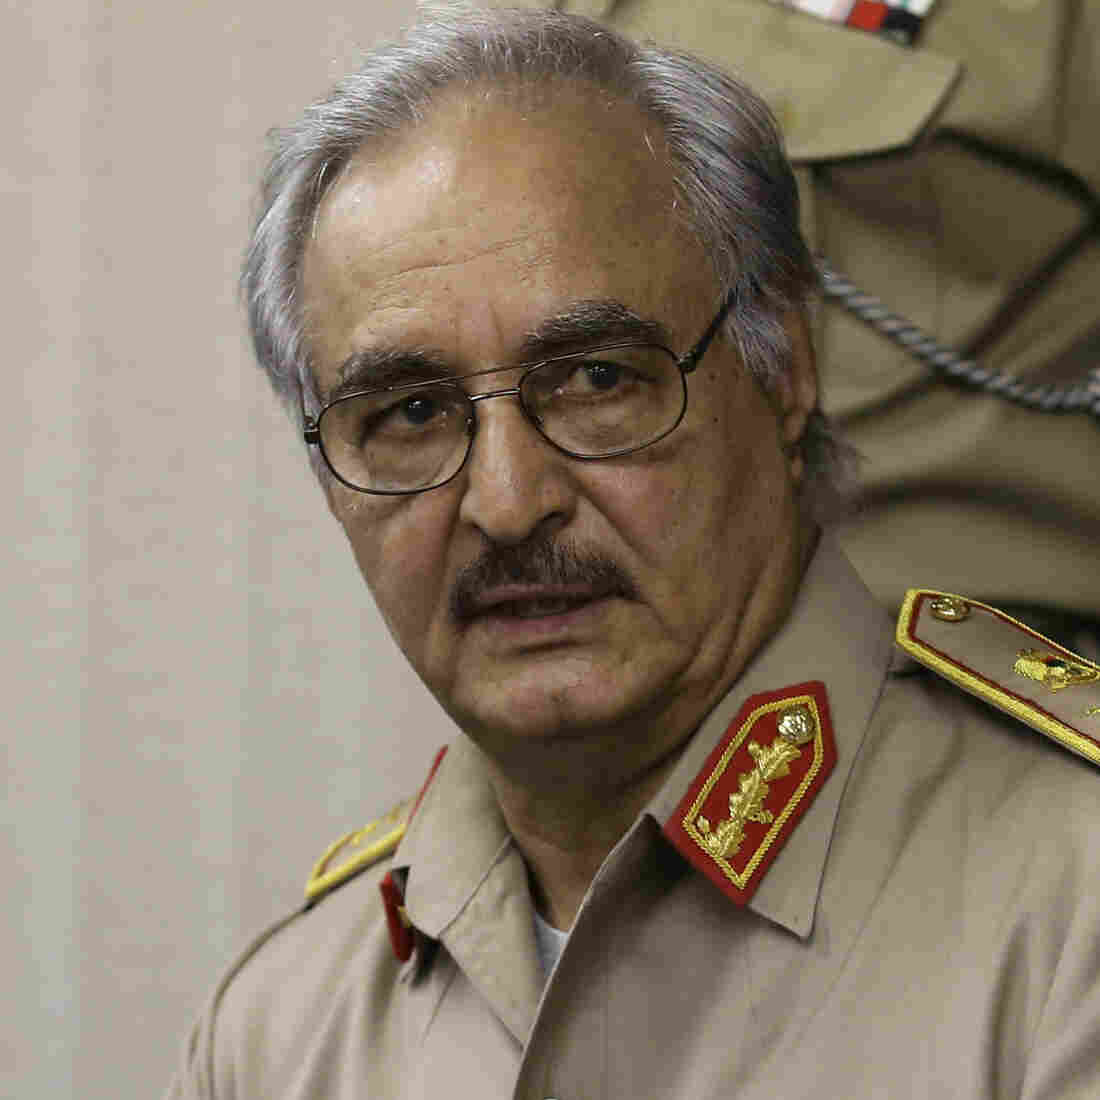 A Rogue Libyan General Tries To Impose Order With An Iron Fist